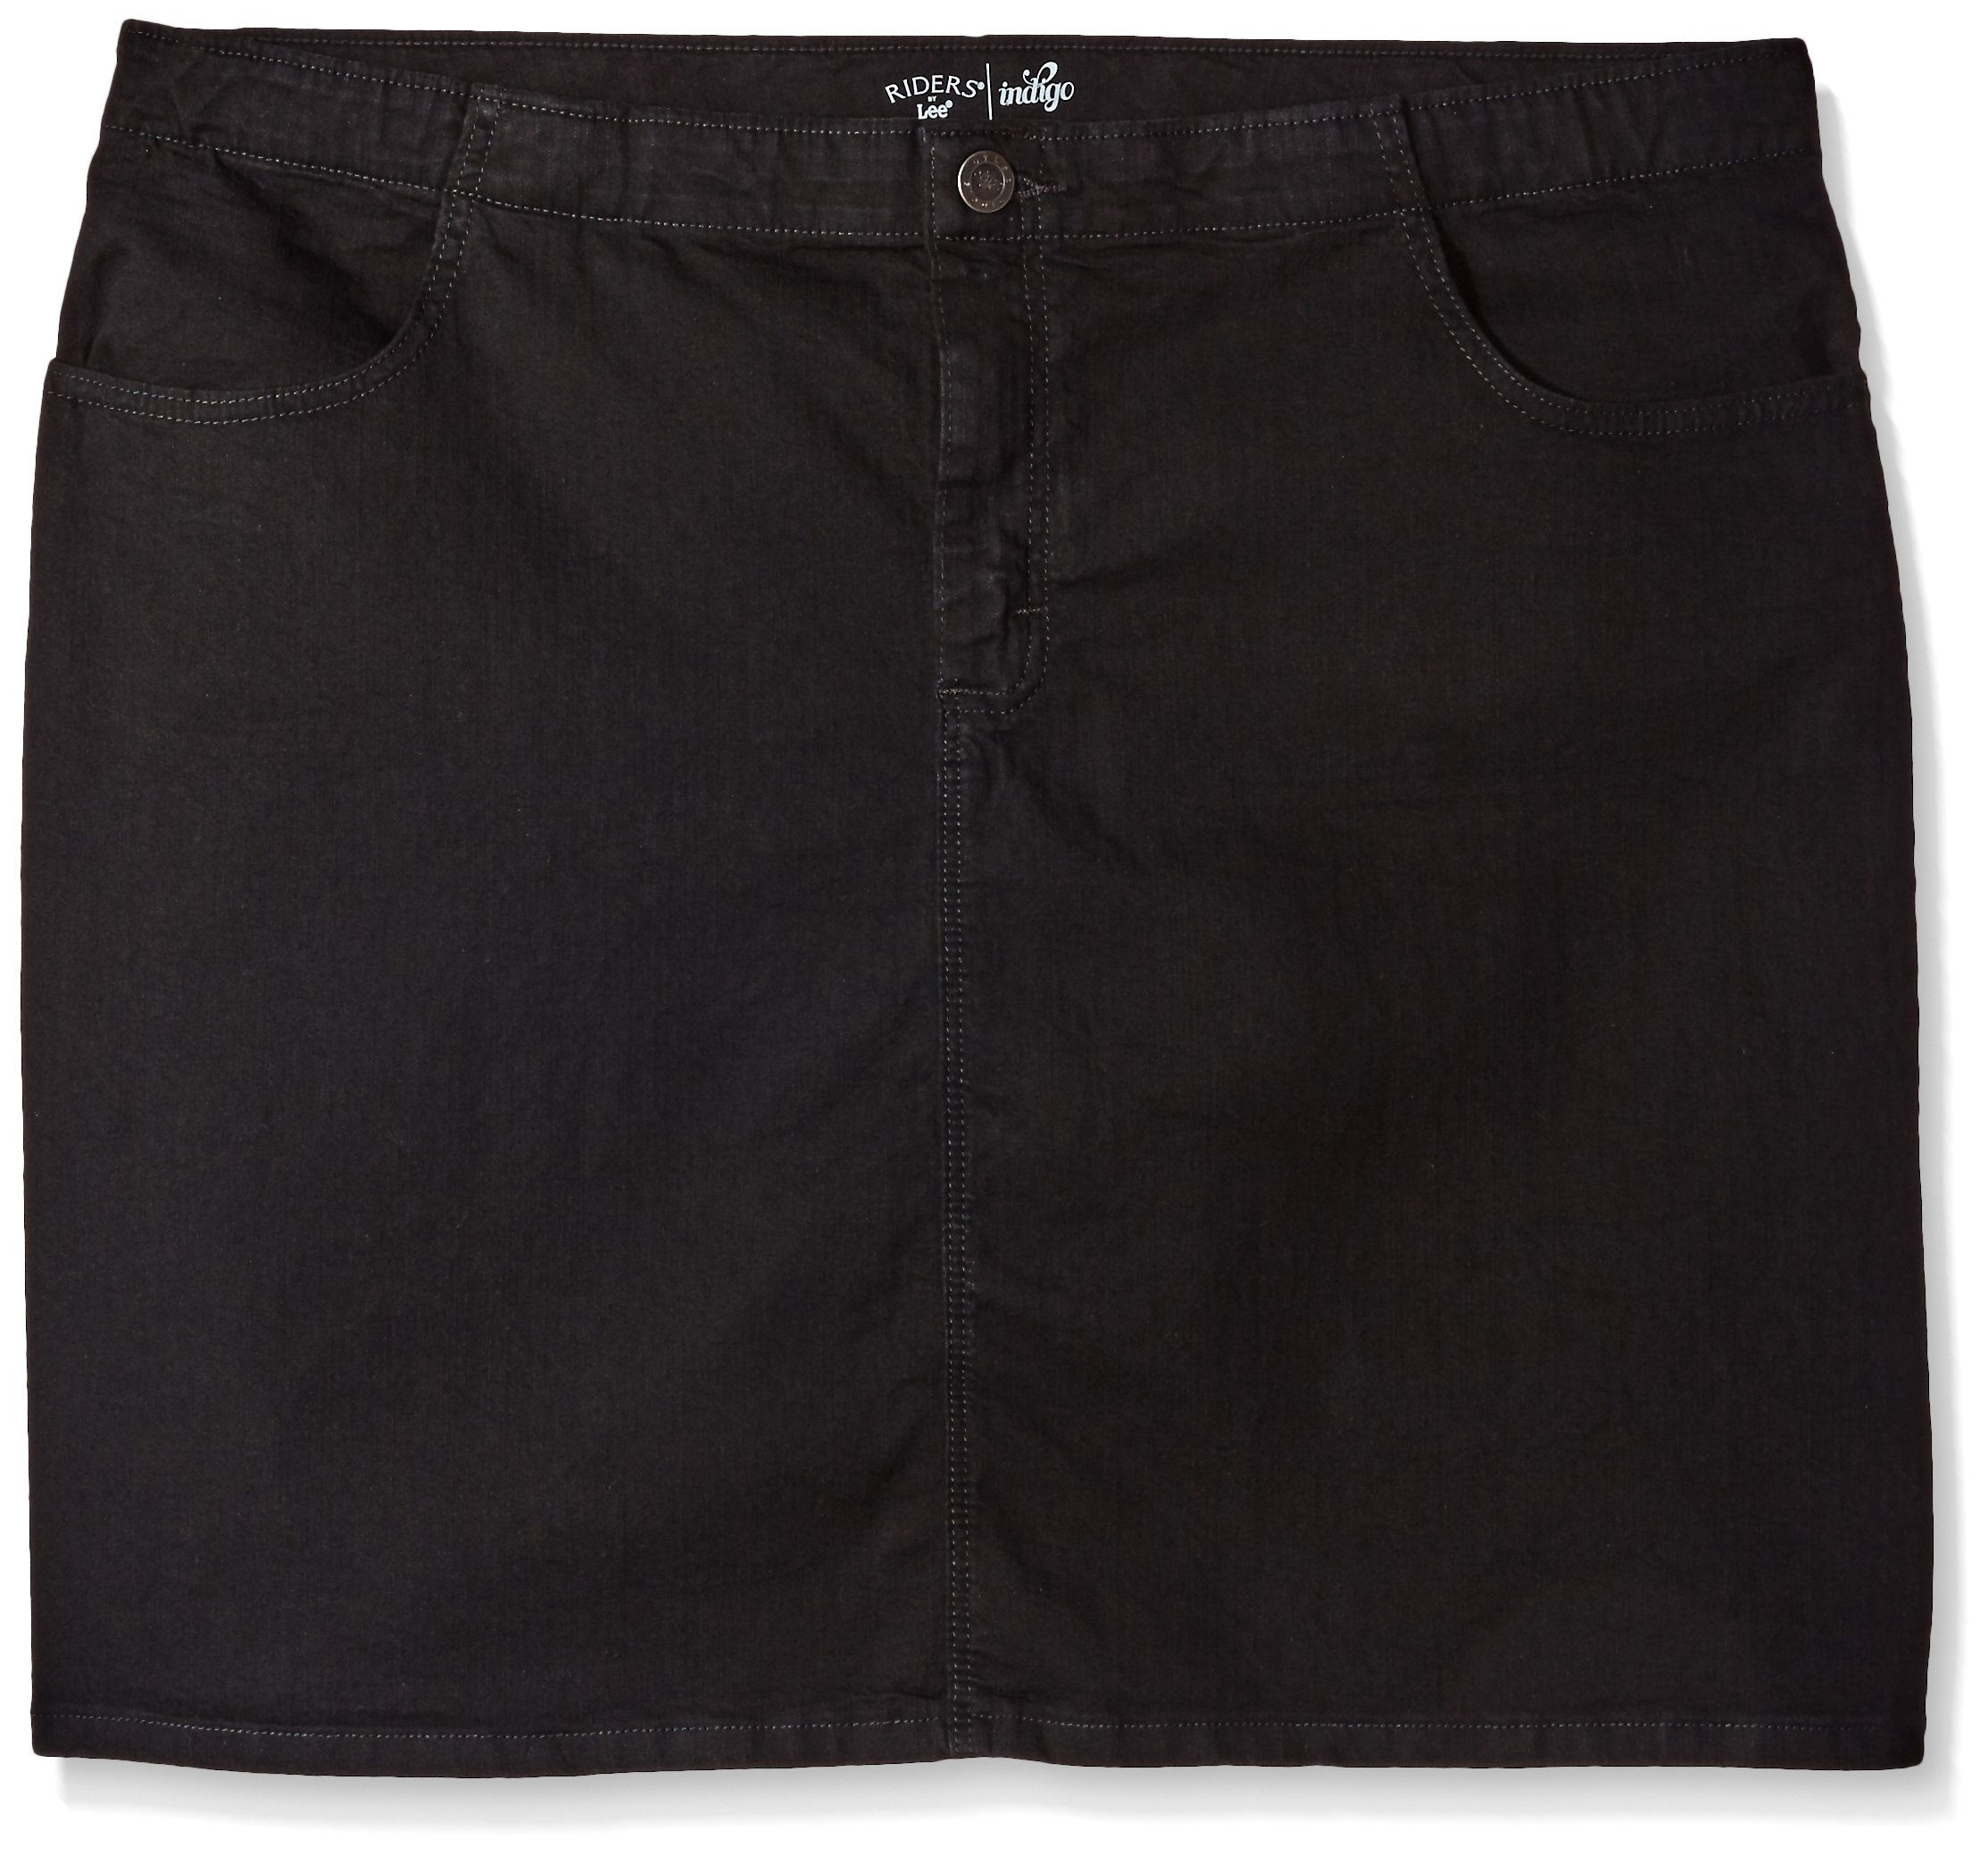 Riders by Lee Indigo Women's Plus Size Comfort Collection Denim Skirt, Black, 20W by Riders by Lee Indigo